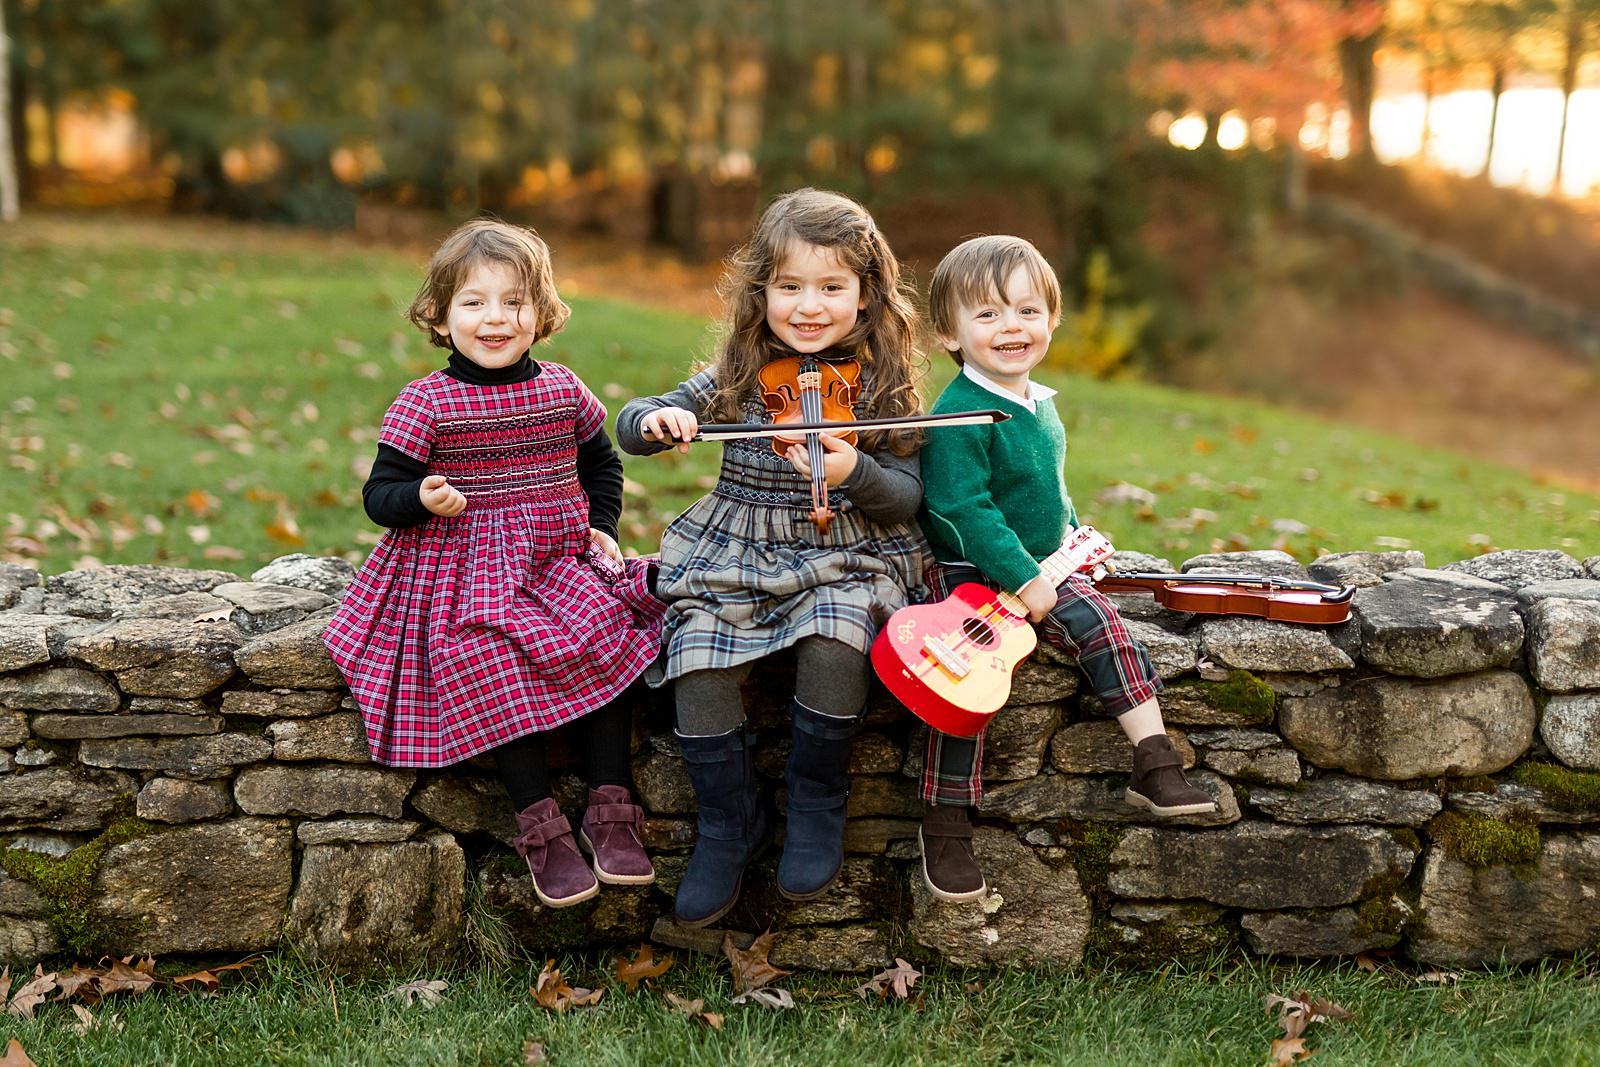 three children play musical instruments